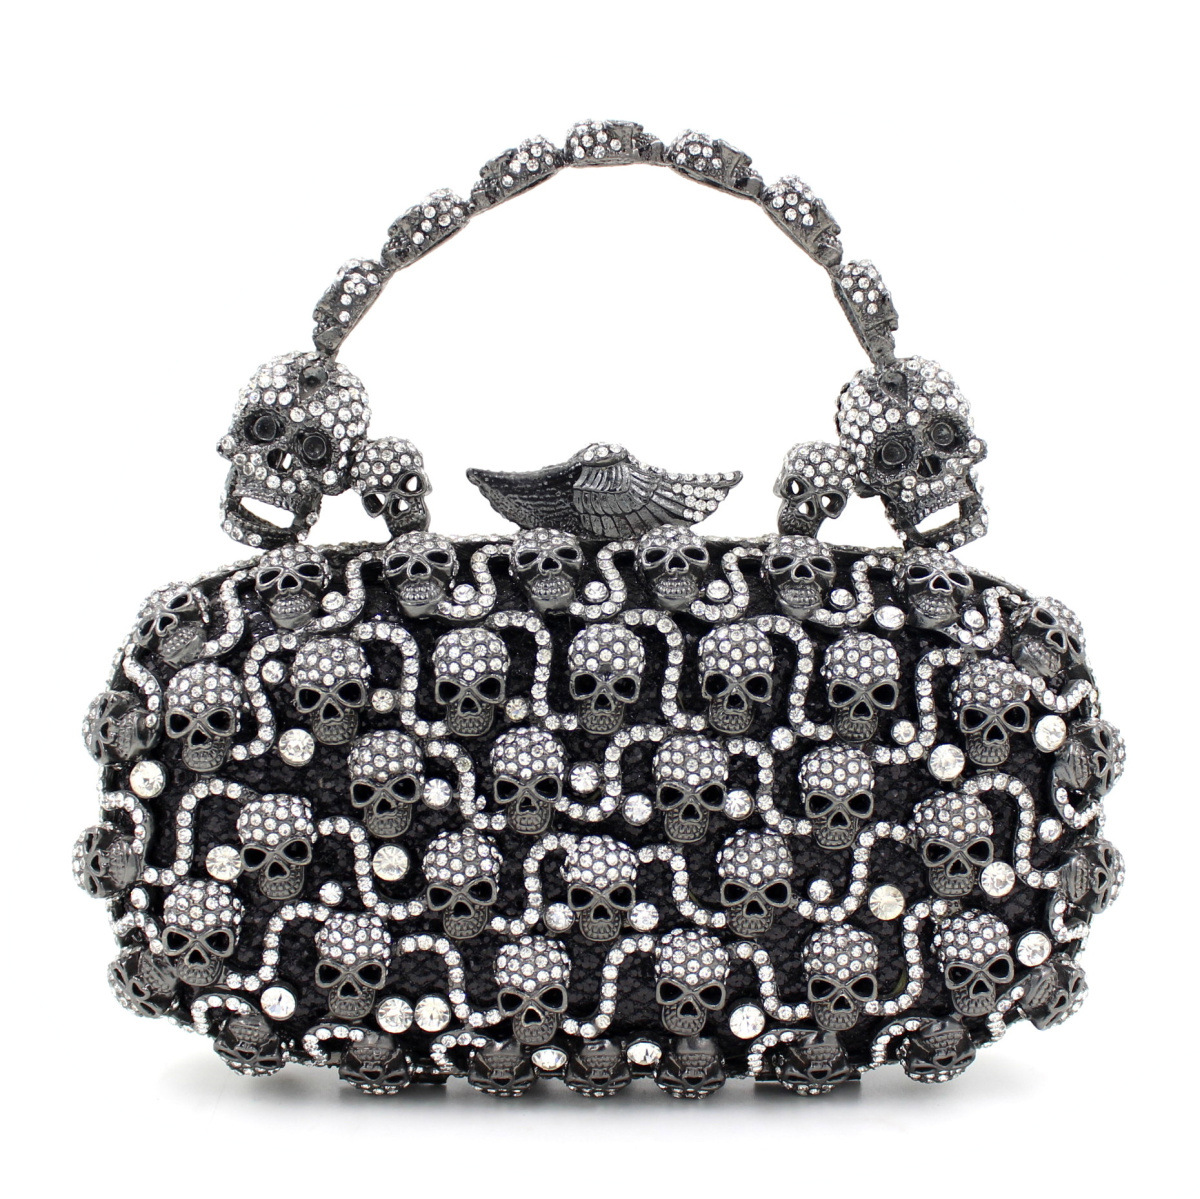 2017 new skull women day clutches bag luxury full diamonds ladies single shoulder handbag handbags purses fashion evening bags 2017 new colorful diamonds women bag single shoulder handbag luxury ladies evening bags handbags purses female day clutches